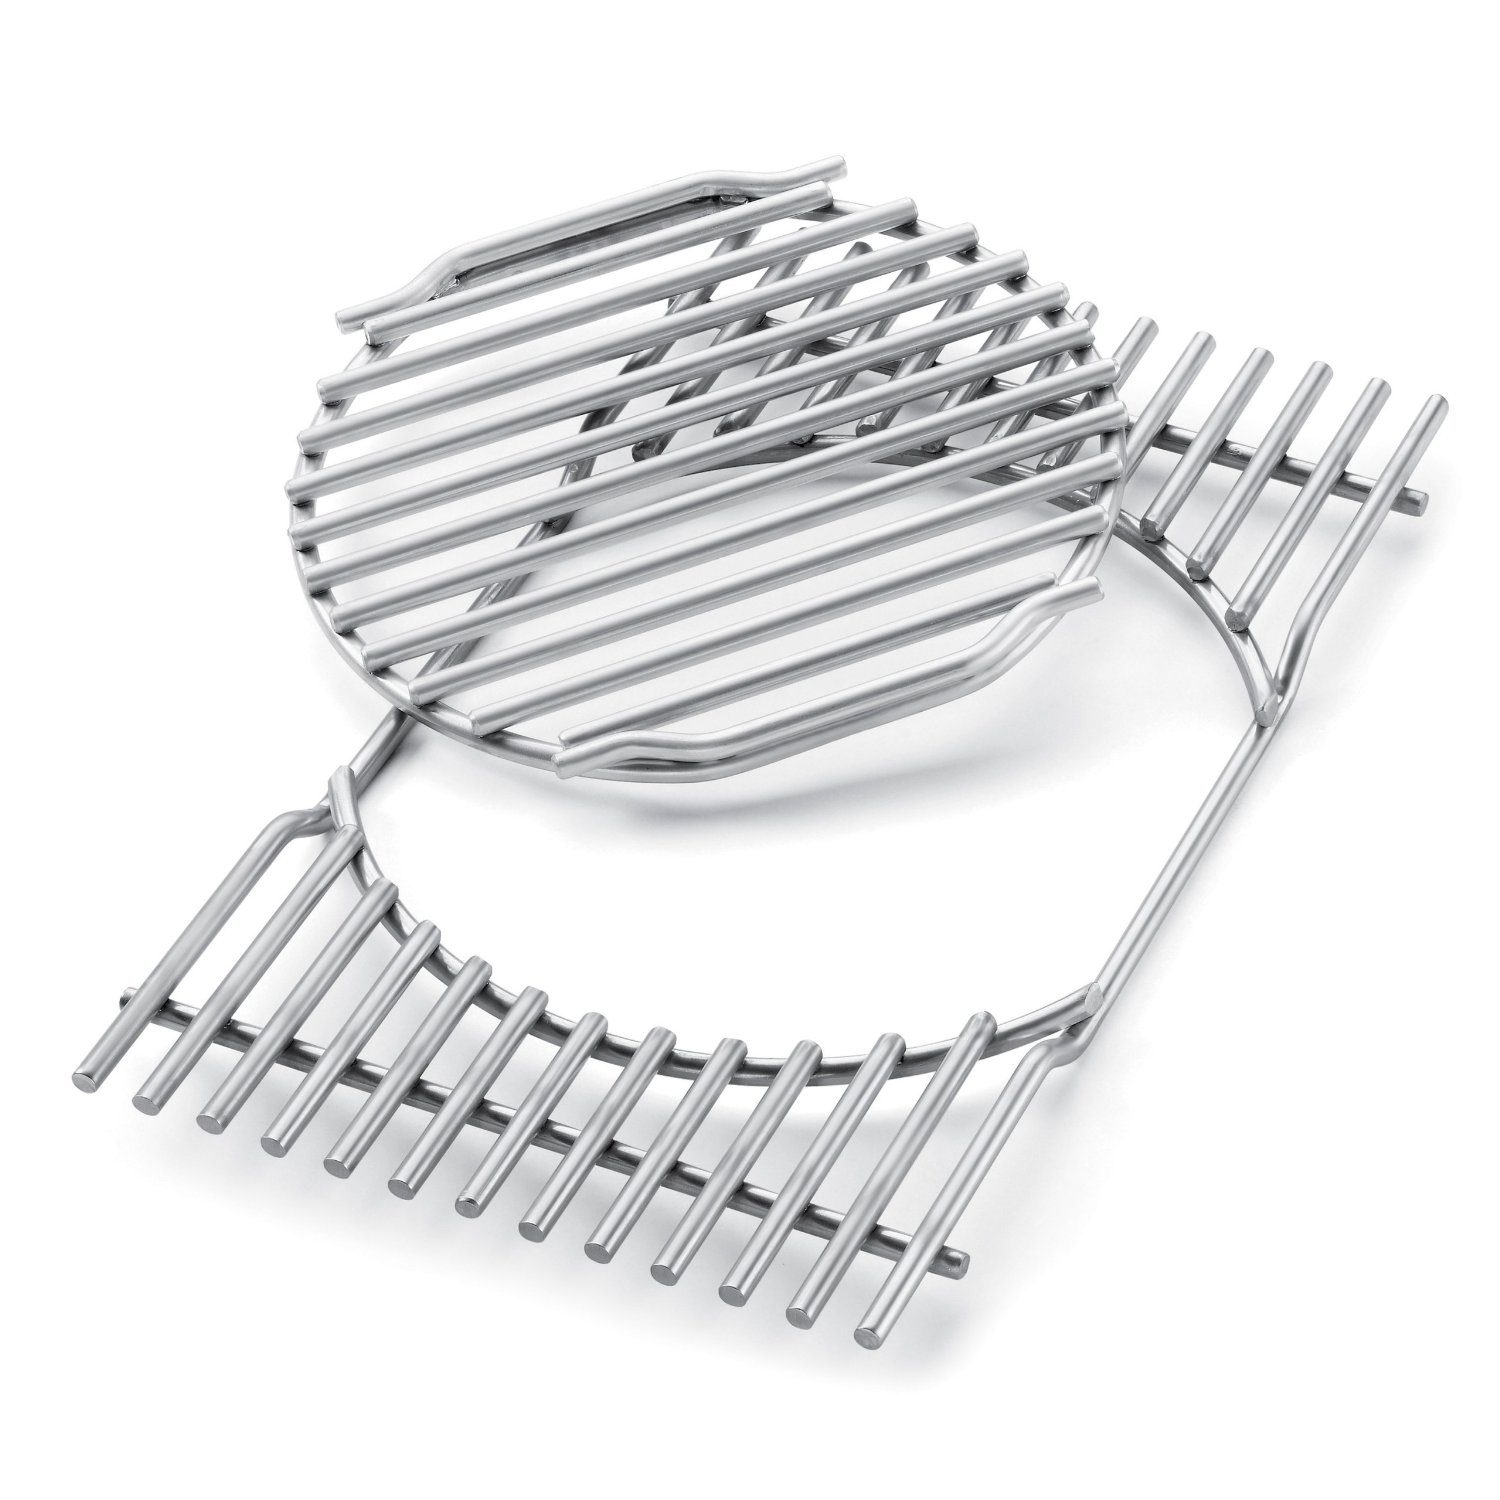 Weber Original GBS Stainless Steel Summit Grate - 7585